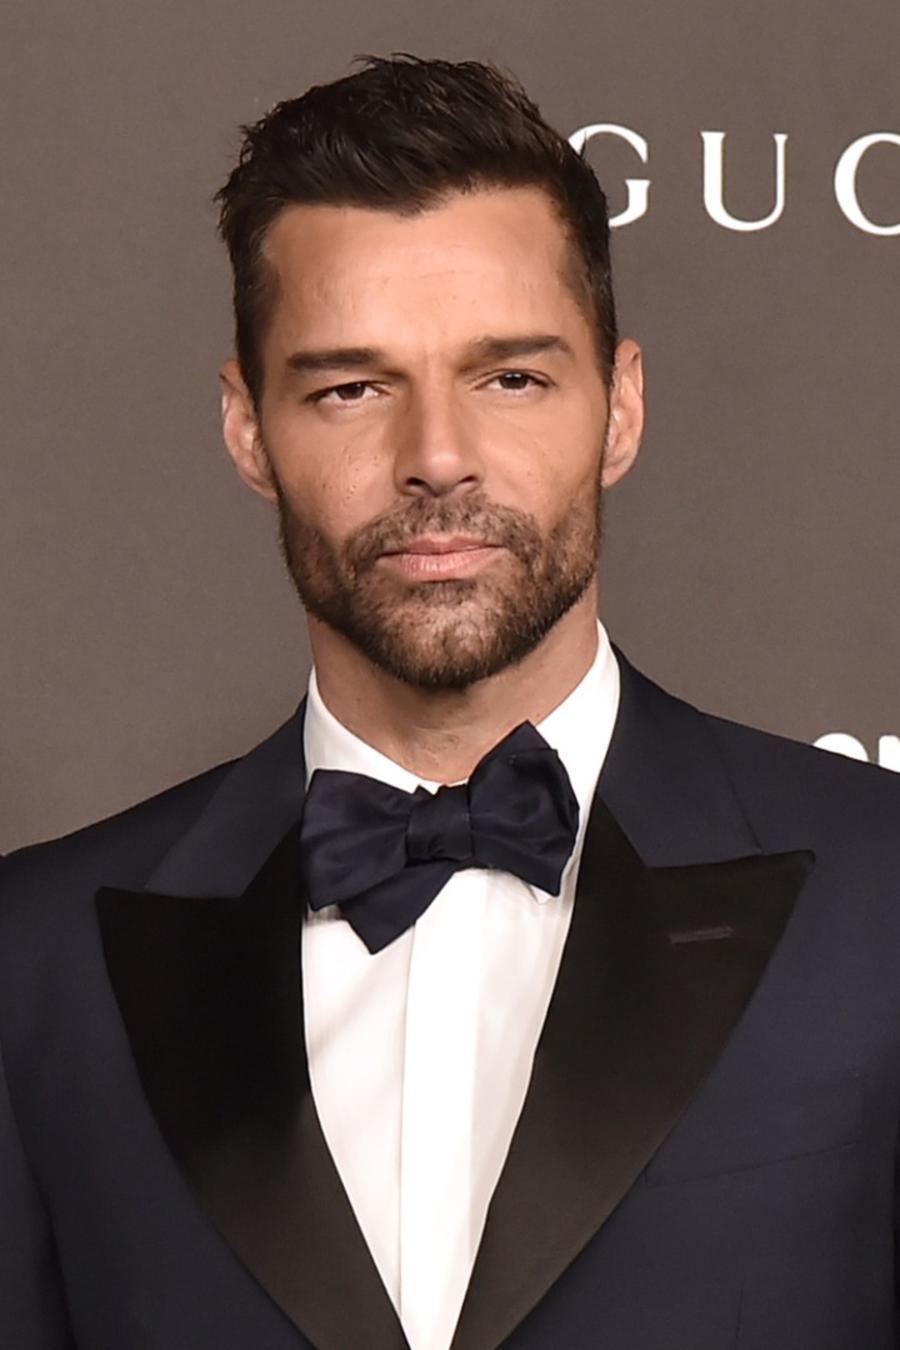 Ricky Martin attends the 2019 LACMA Art + Film Gala at LACMA on November 02, 2019 in Los Angeles, California.